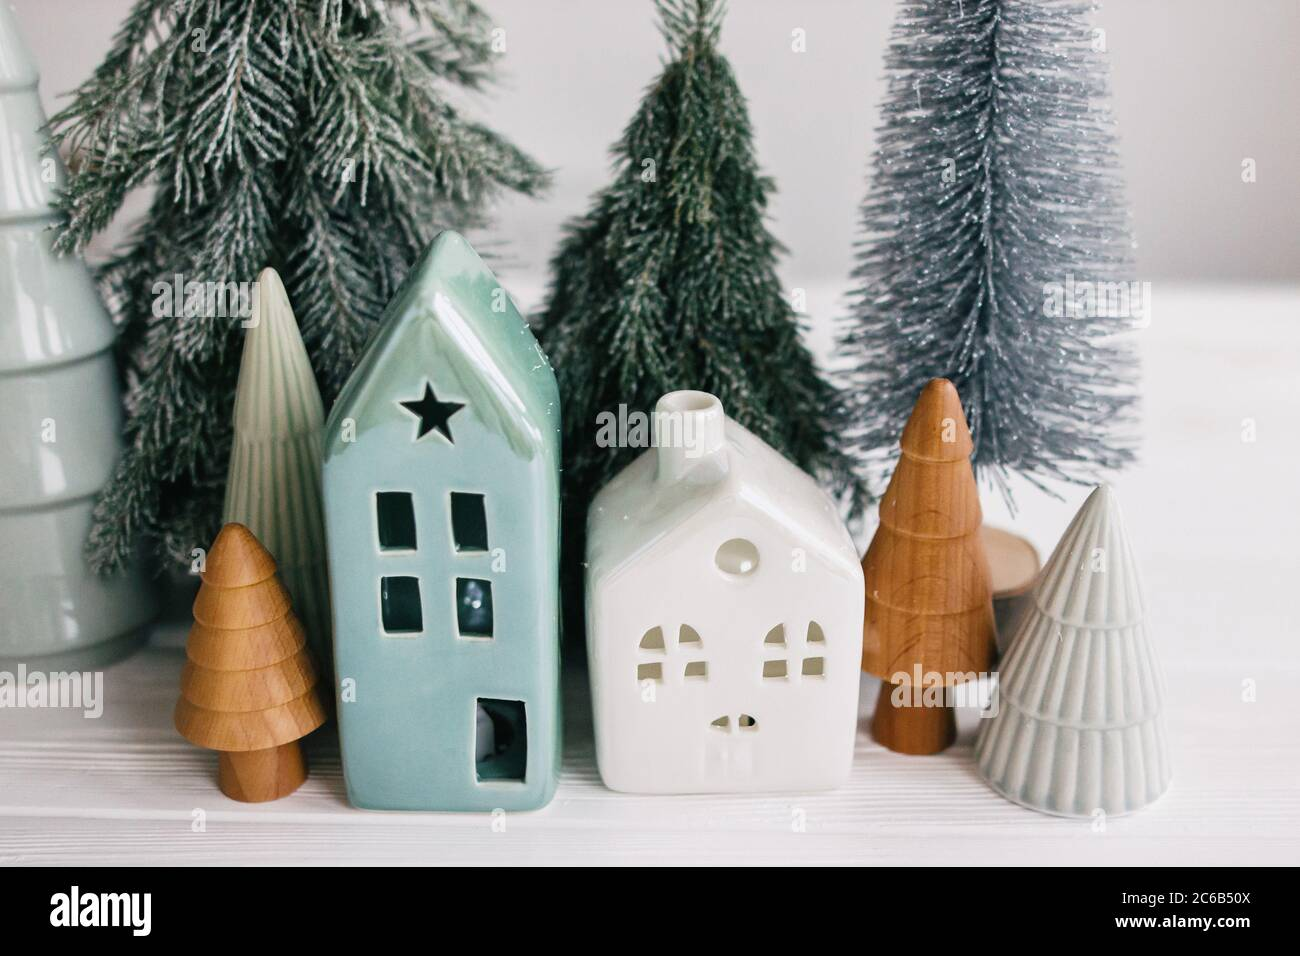 Christmas Little Houses And Trees On White Background Holiday Festive Decor Miniature Village Ceramic Houses Wooden Christmas Trees And Handmade P Stock Photo Alamy